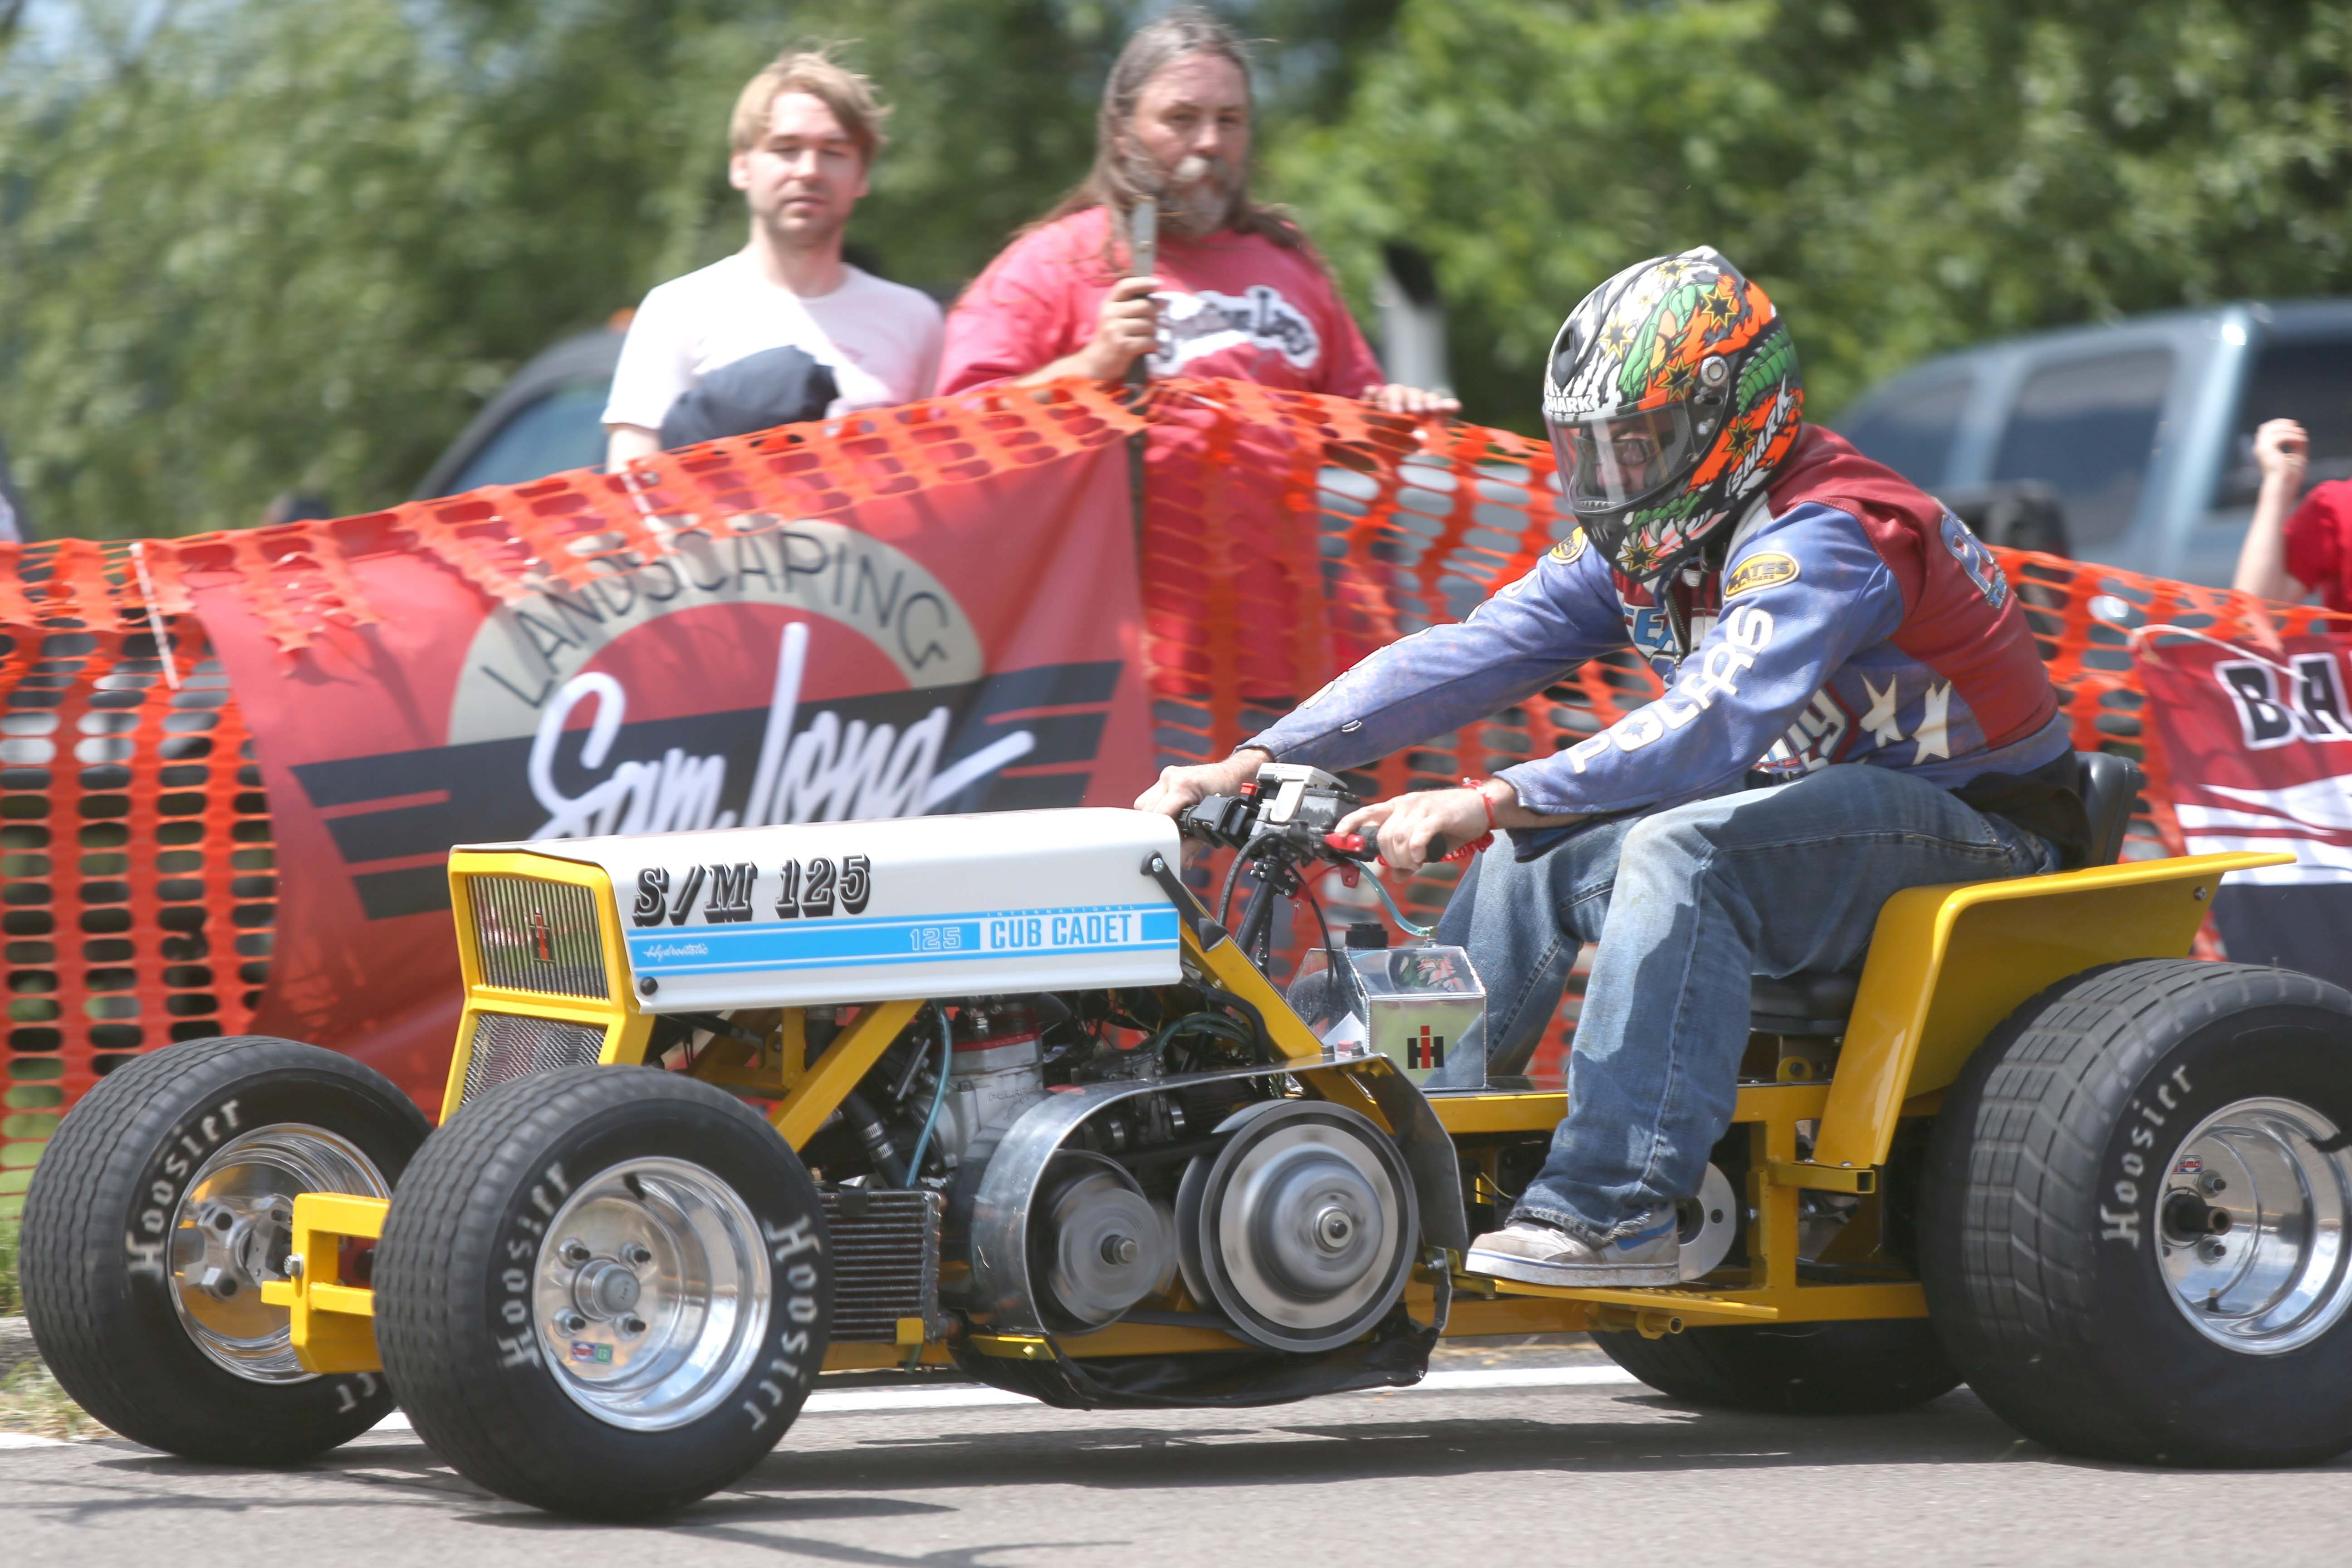 Rob Schooping Jr. of Grand Island, throttles the green light Sunday at the beginning of his race. He was the champion of the Father's Day Lawn Mower Race on Grand Island.